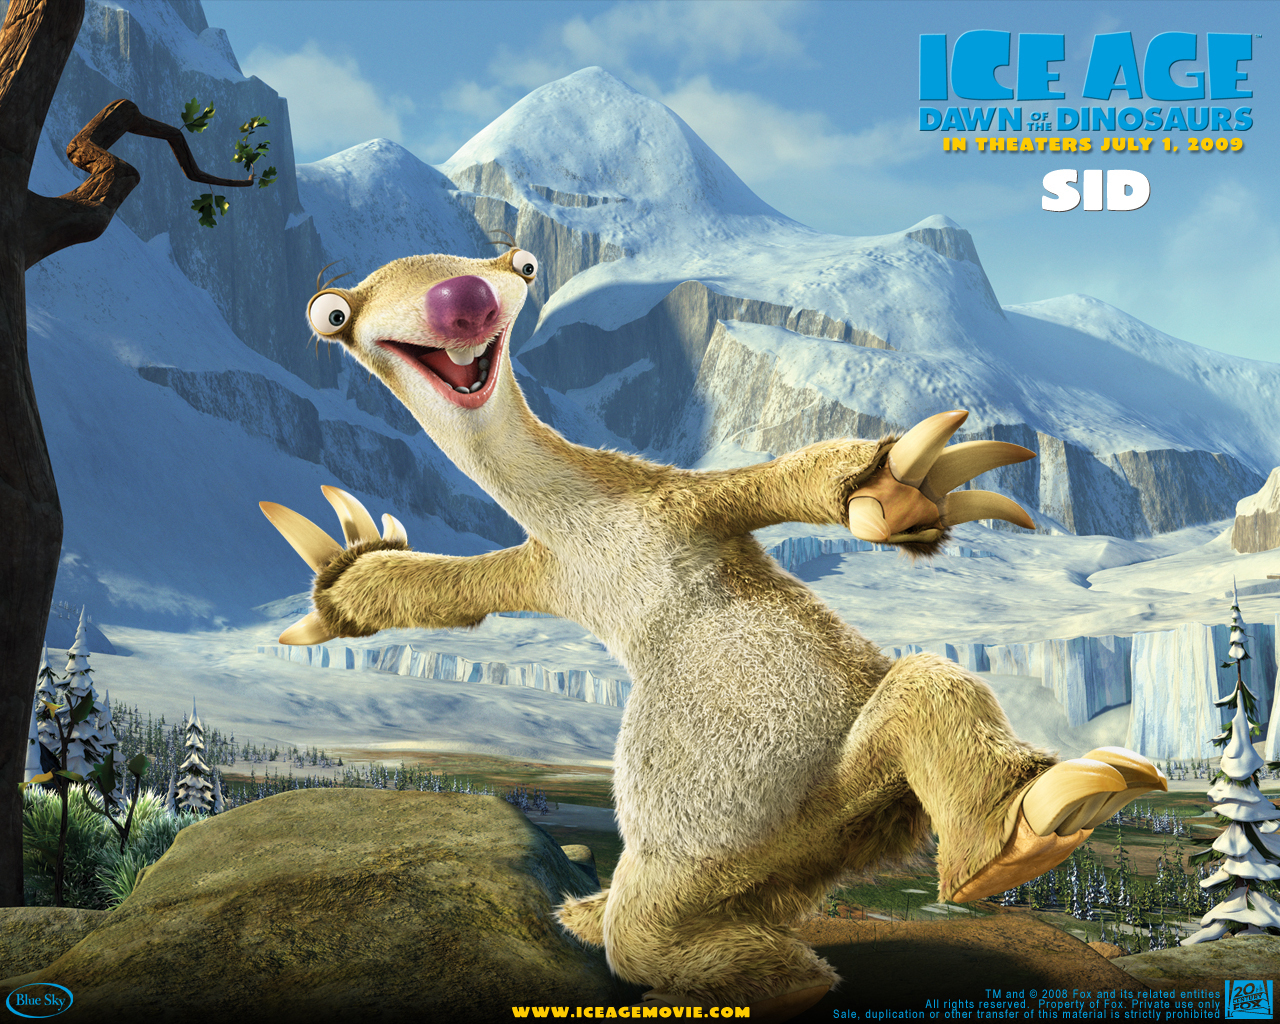 Ice age 3 dawn of the dinosaurs ice age down of the dinosaurs